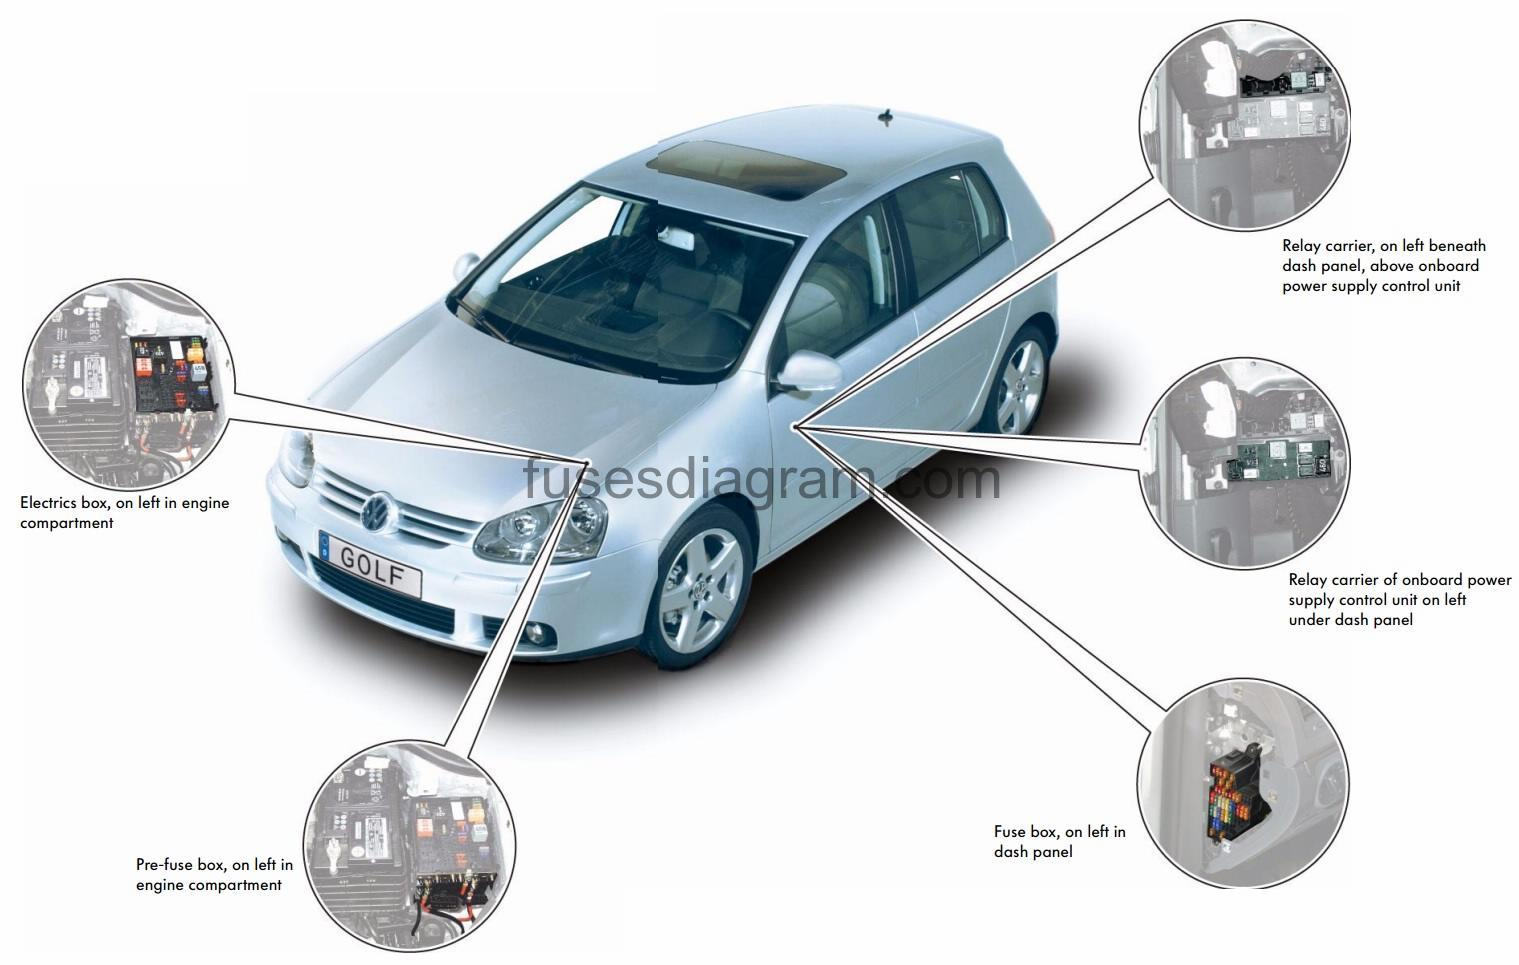 Multifunction Switch Wiring Diagram Starting Know About 2003 Neon Fuse Box Volkswagen Golf Mk5 Dodge